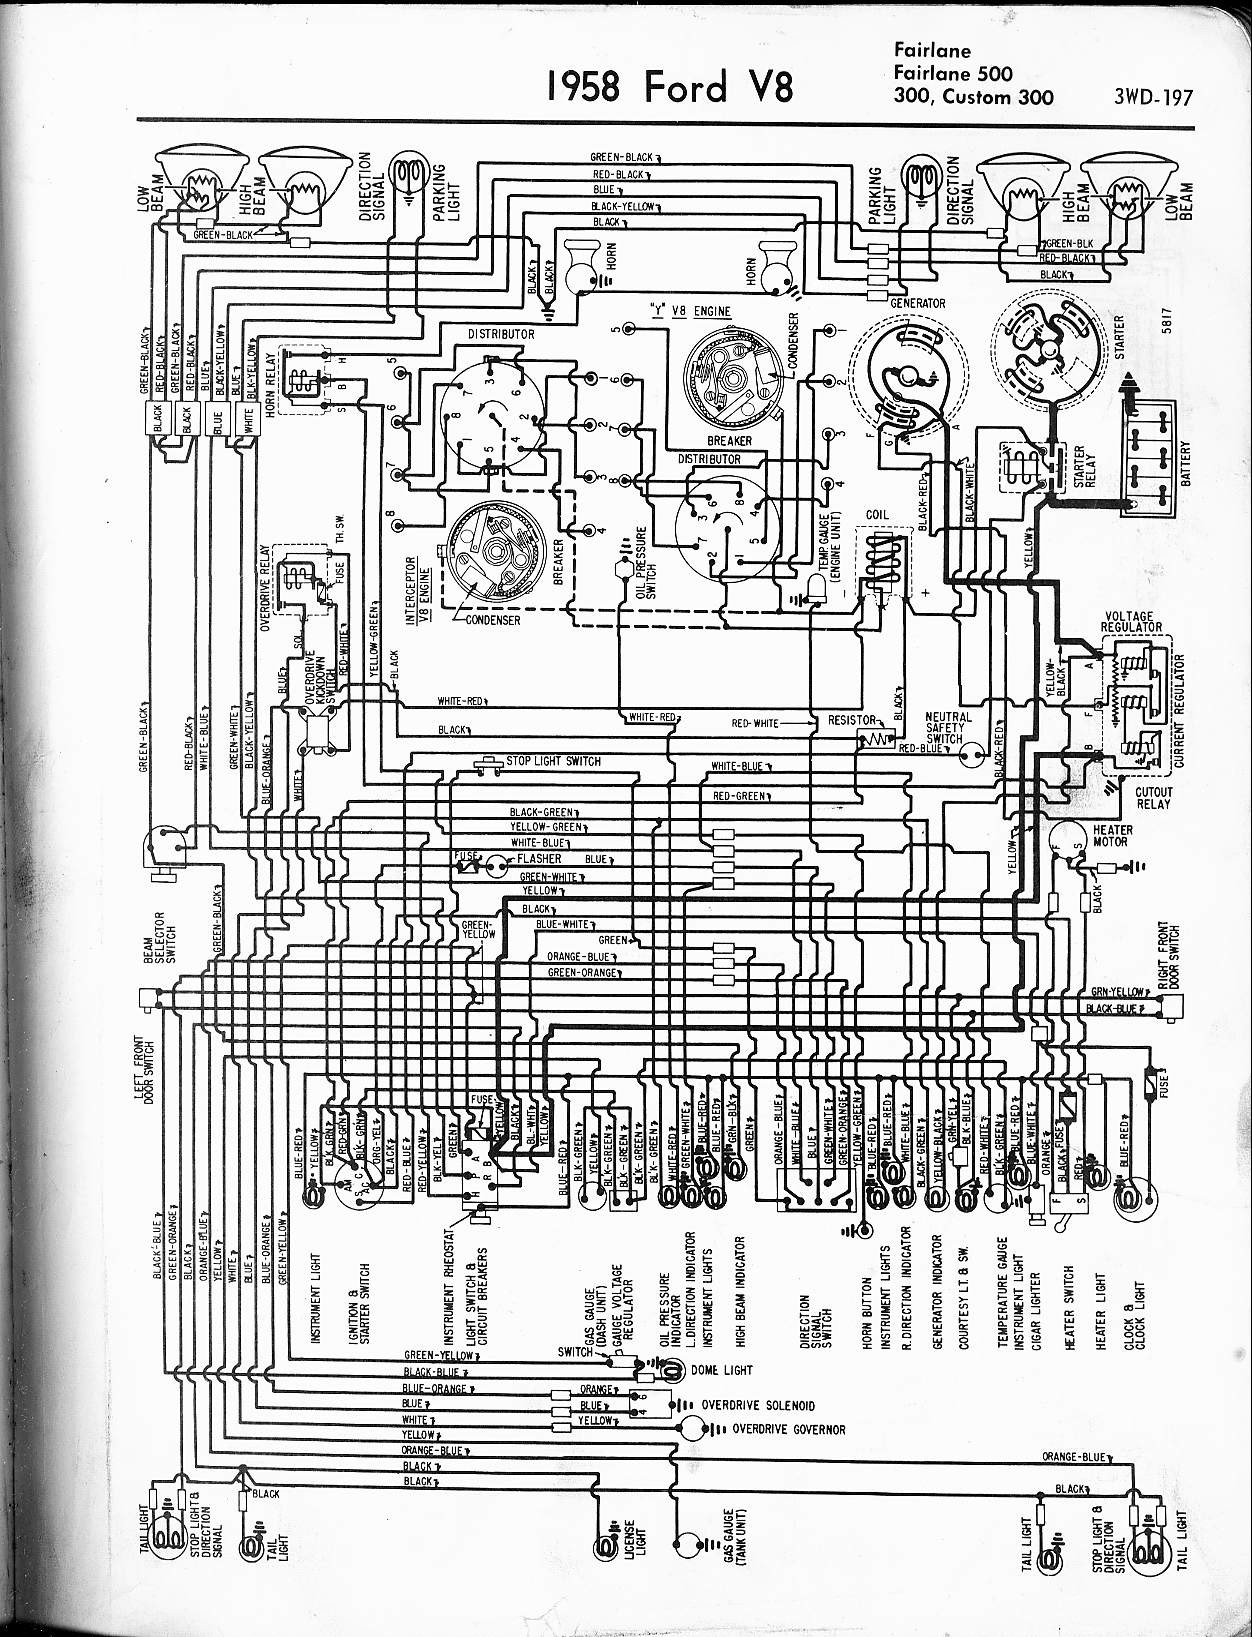 1956 ford wiring diagram wiring diagram directory  1956 ford car wiring diagram #2